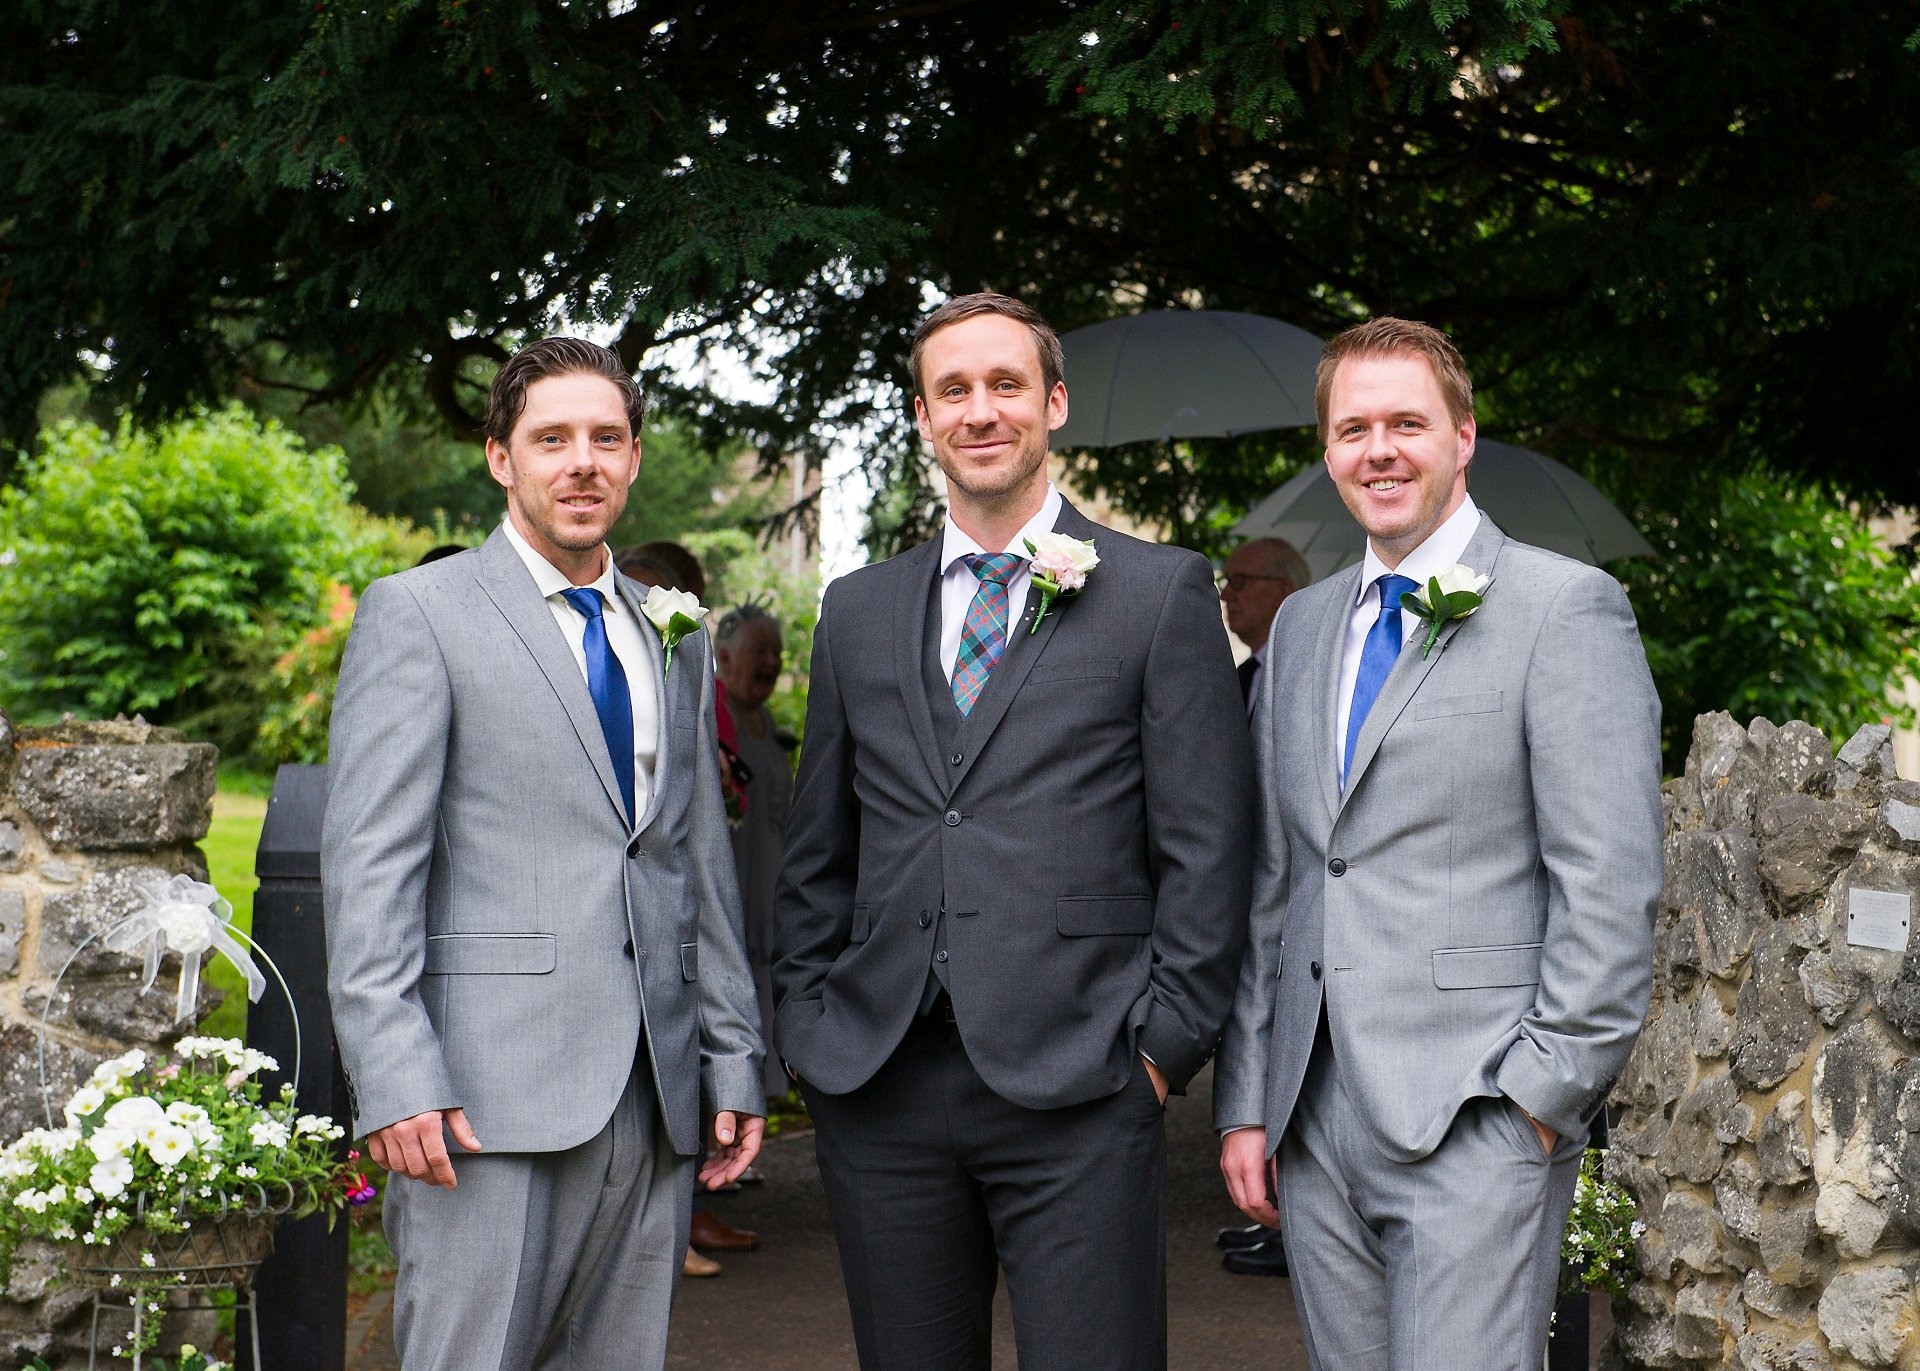 The Canadian groom and his groomsmen (ushers) outside St Peter's Ditton in smart grey suits, tartan and blue ties and rose buttonholes